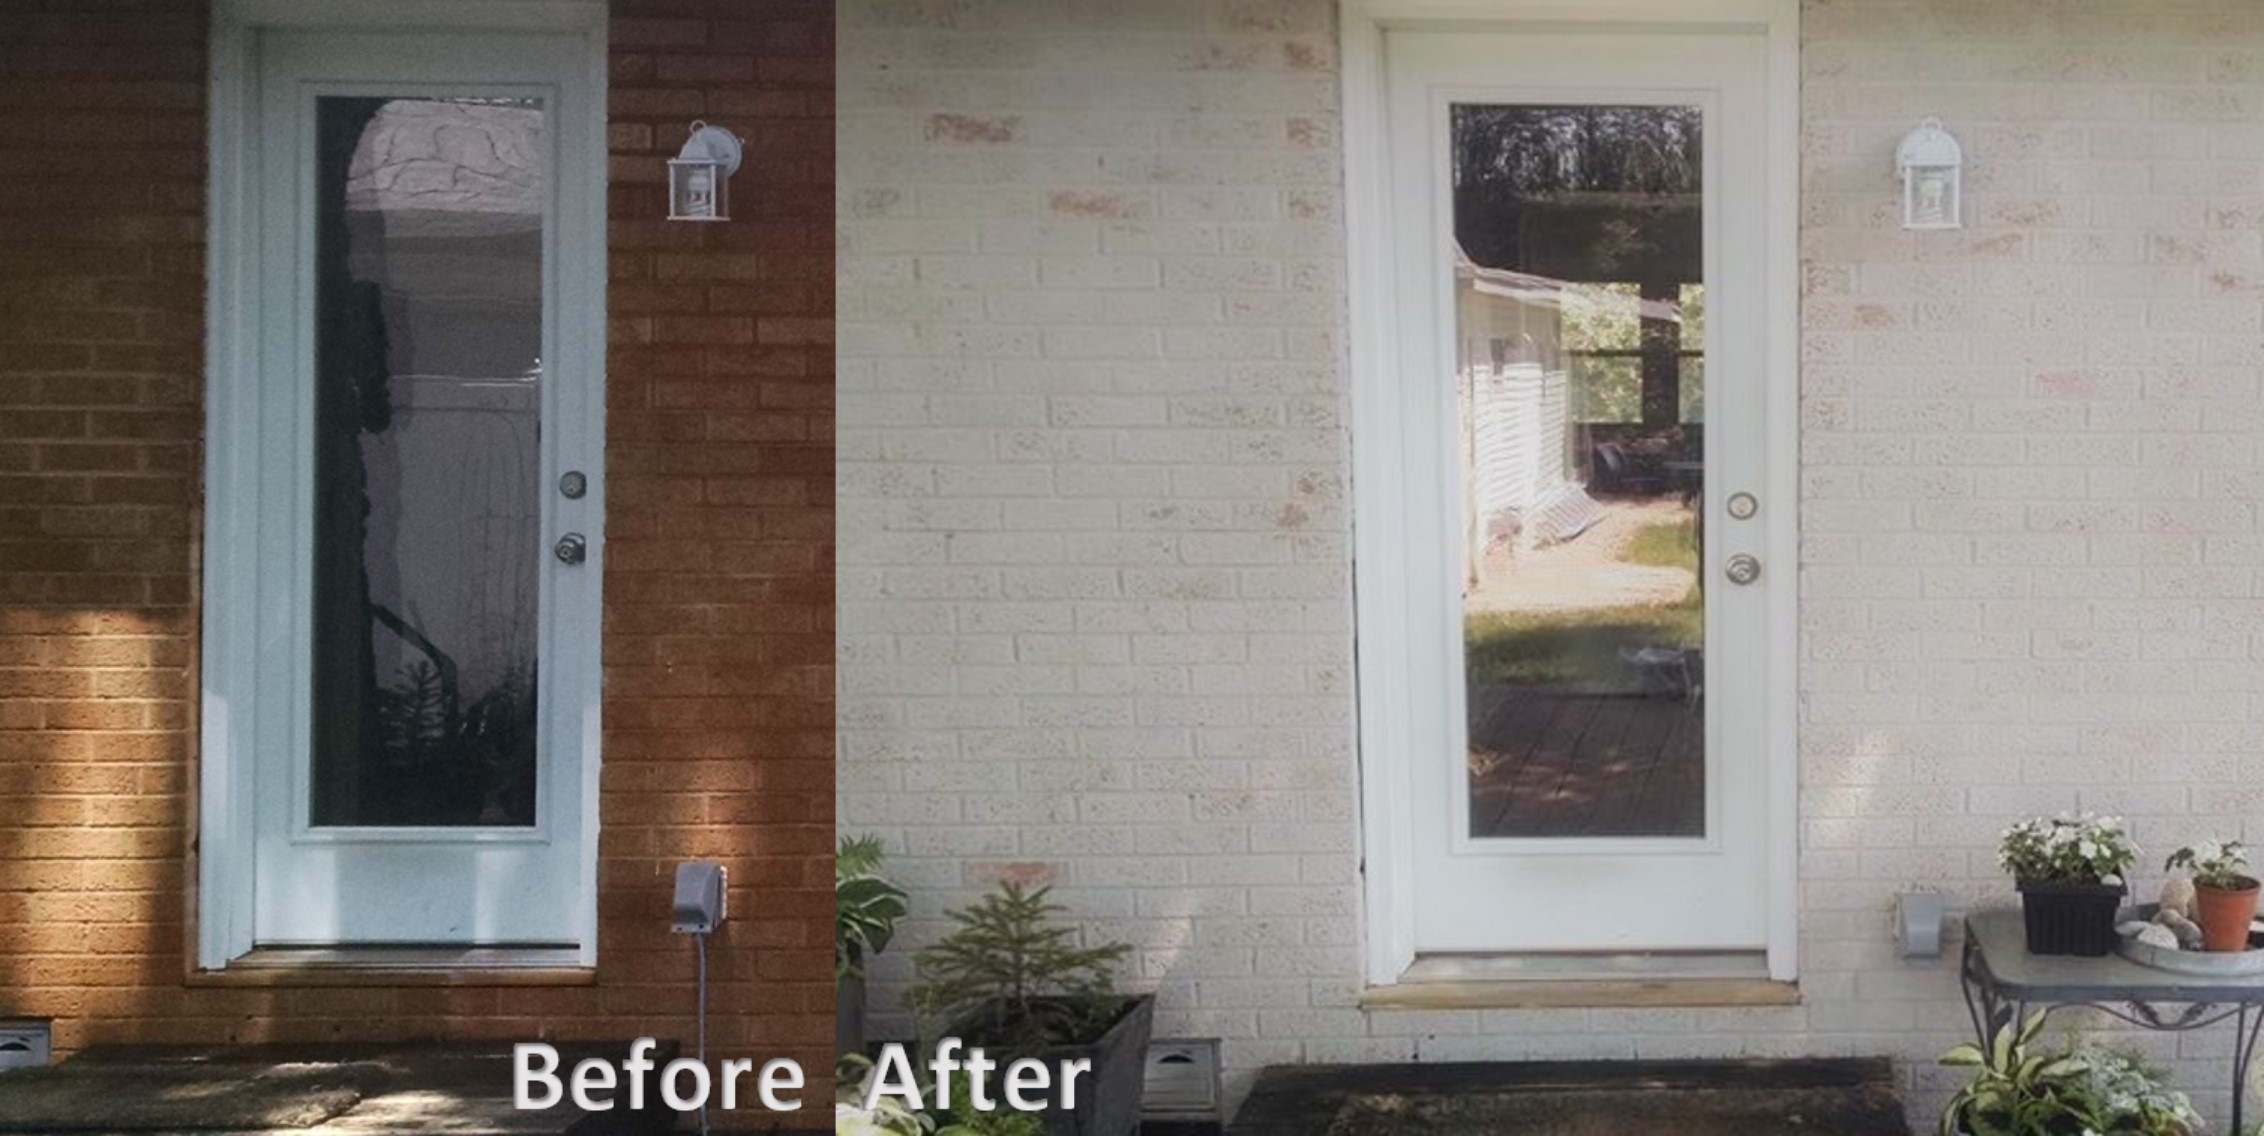 Before and after back entrance